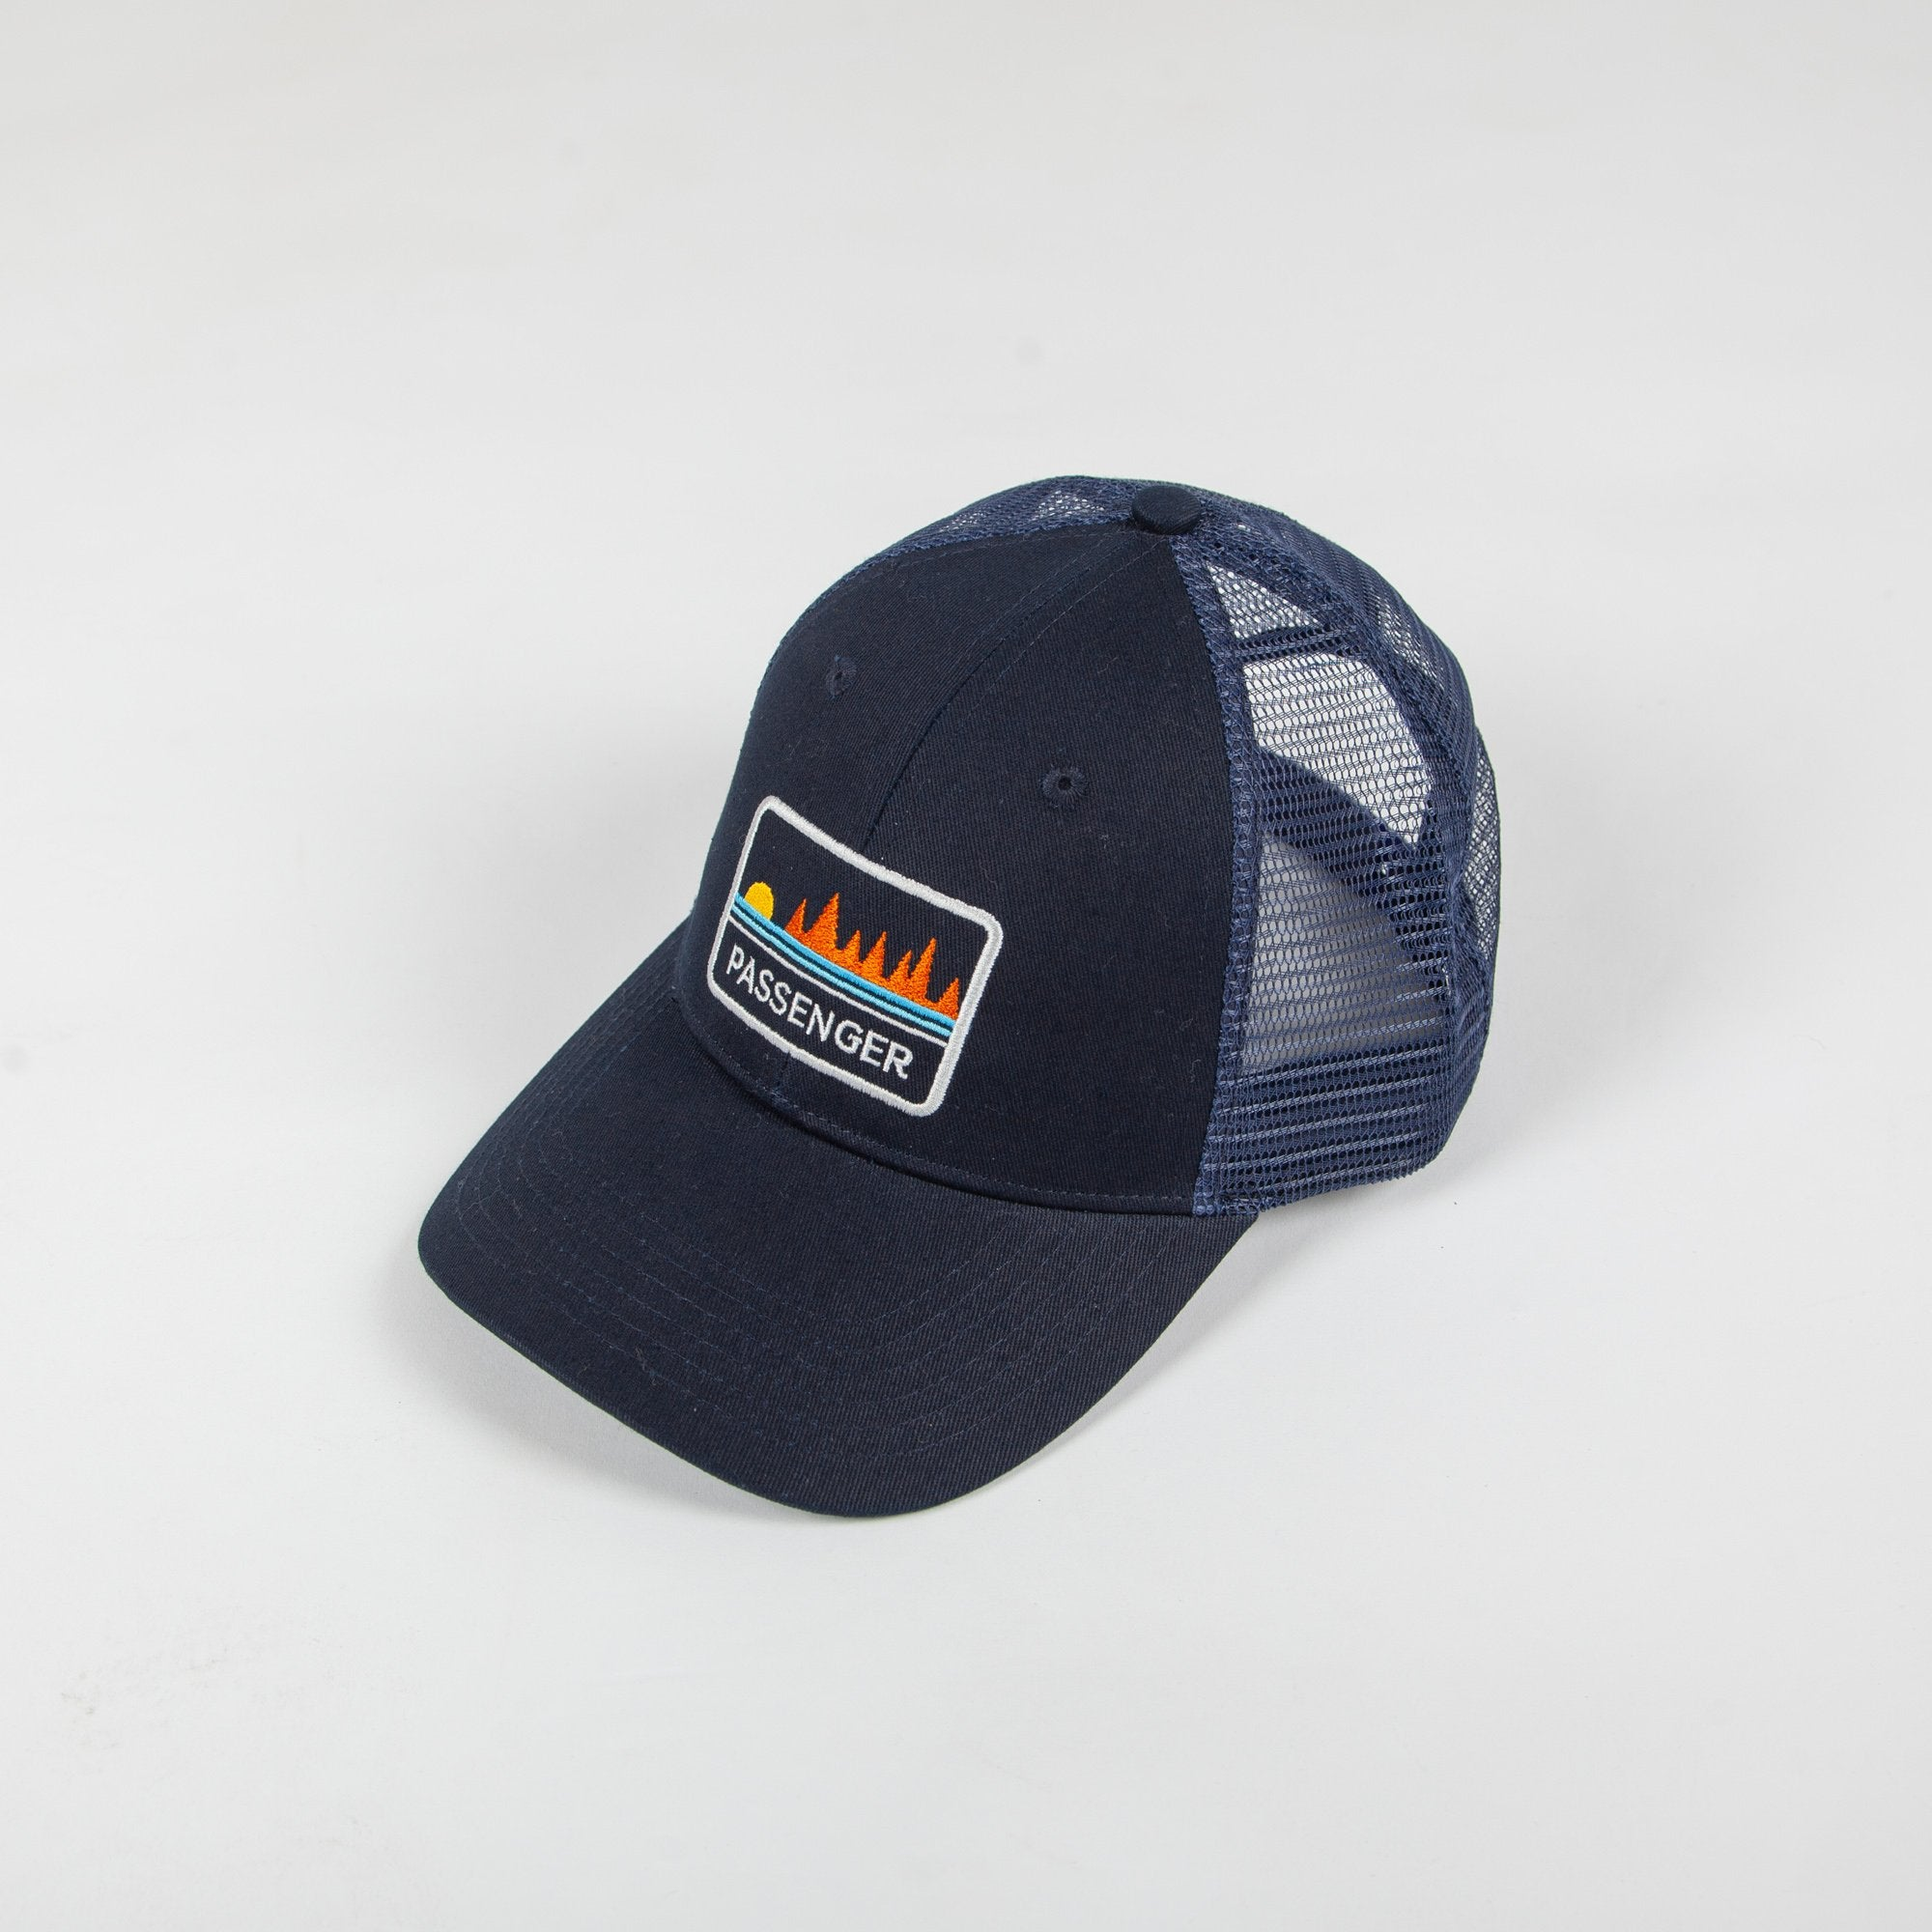 Kombi Cap - Blue Nights Navy image 2